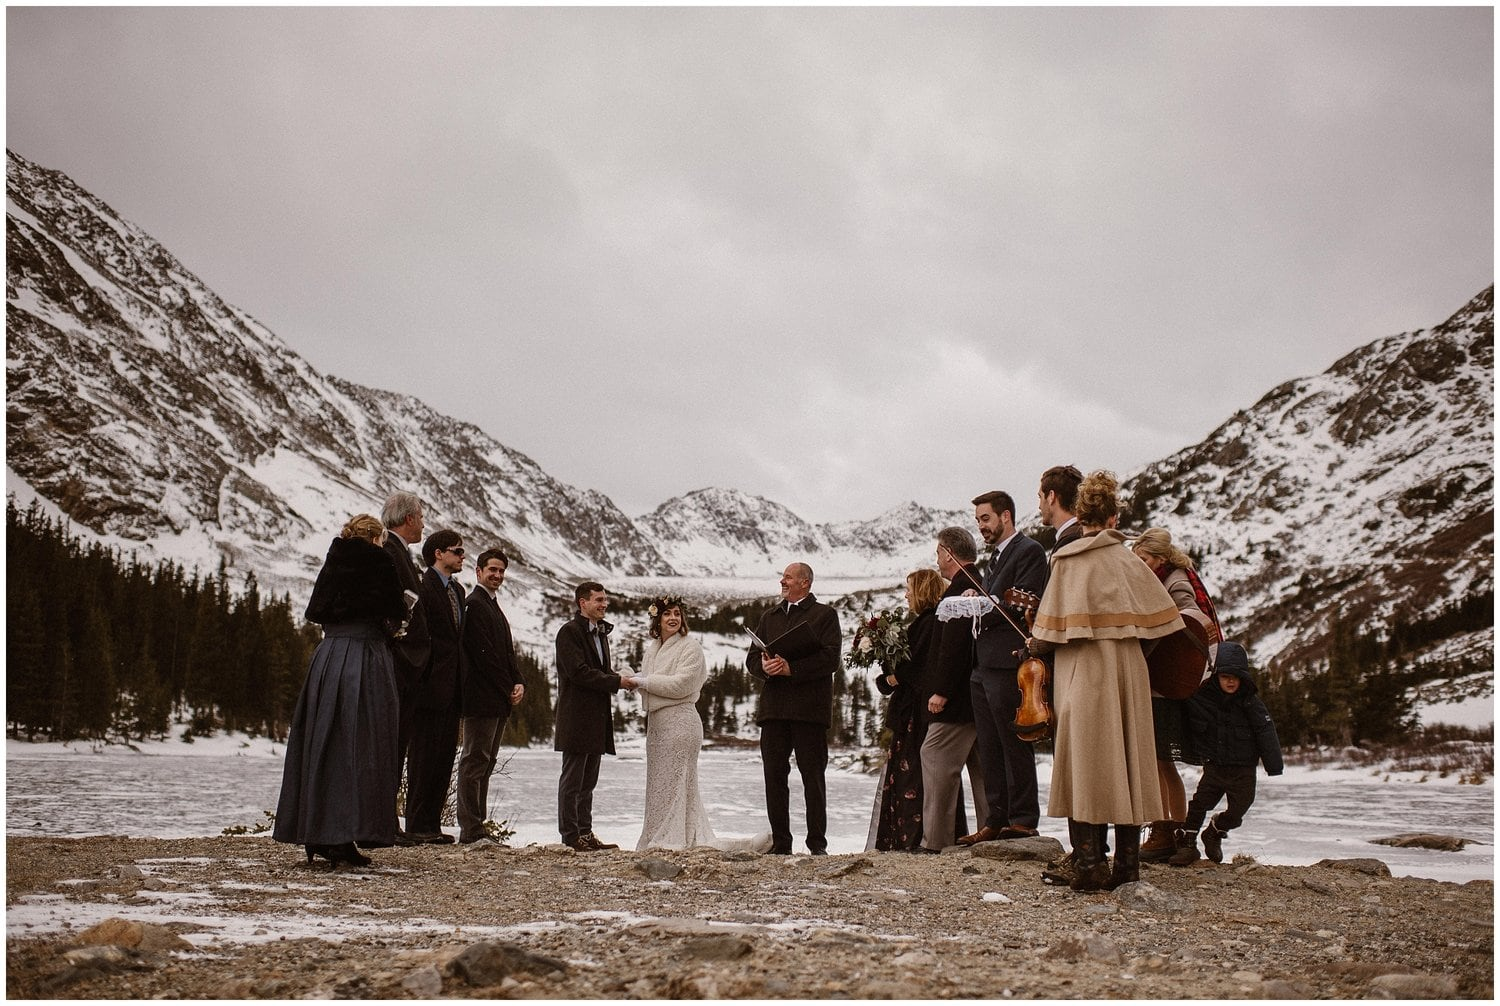 A bride and groom have a wedding ceremony in the snowy mountains with family and friends standing by their side.